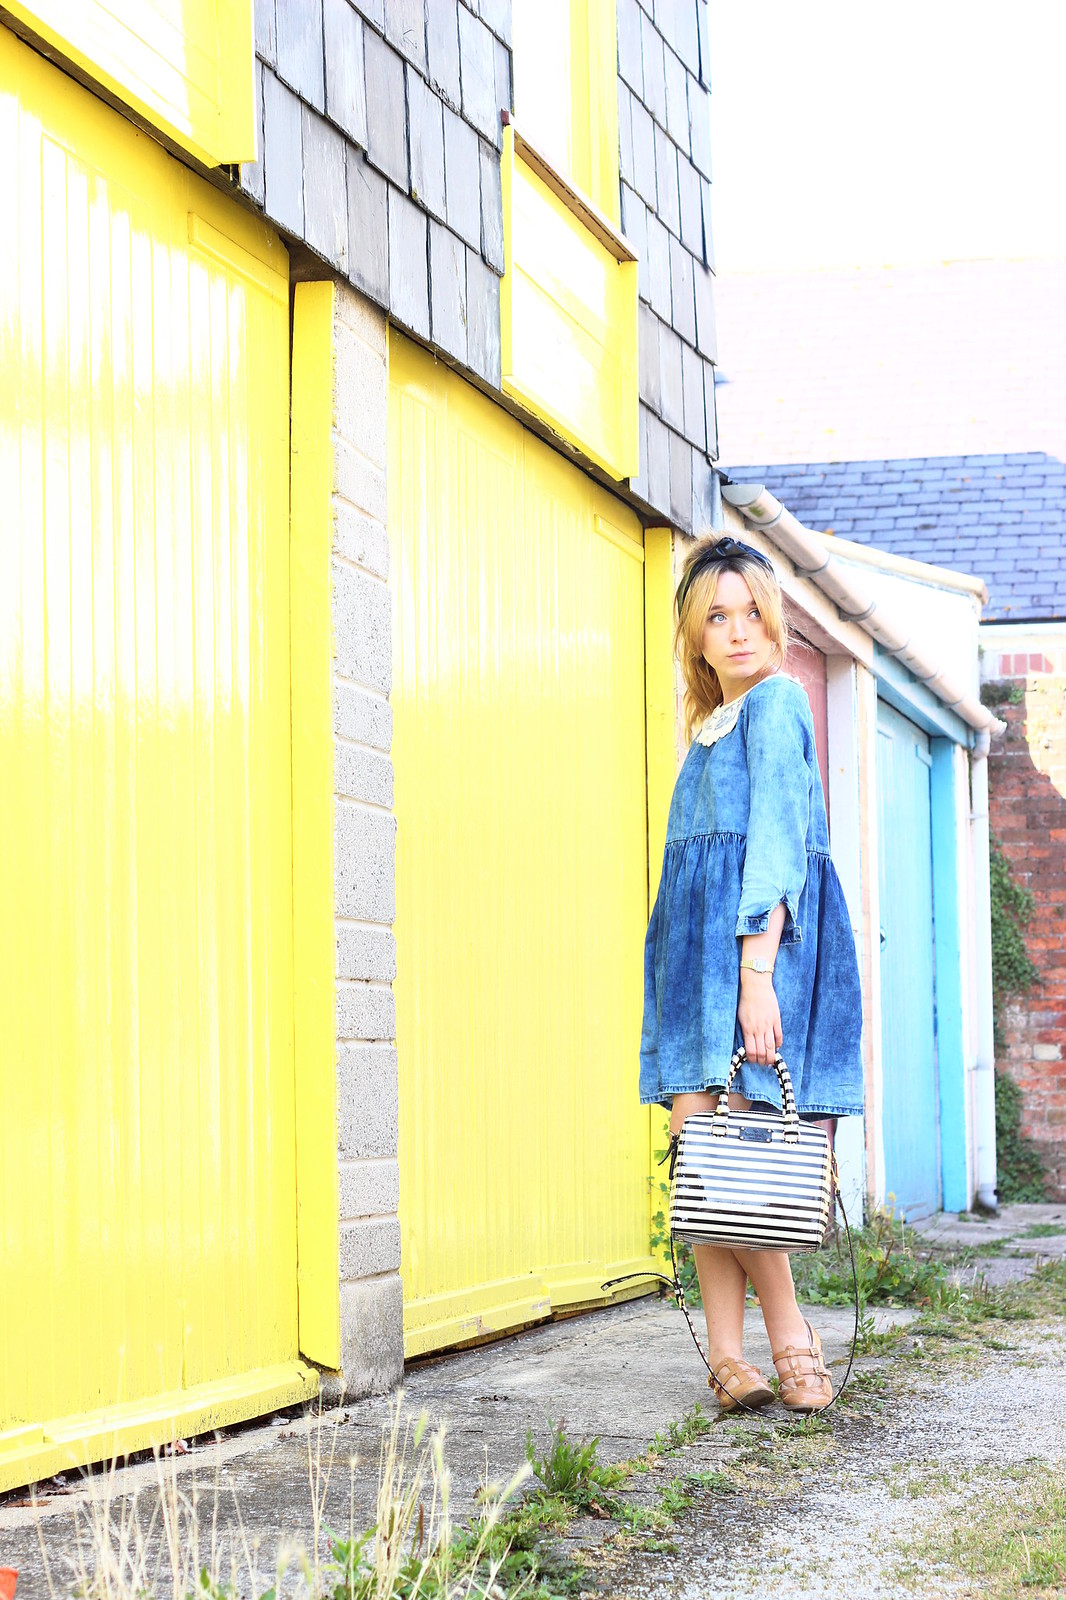 1denim, smock dress, lace collar , diy, vintage style